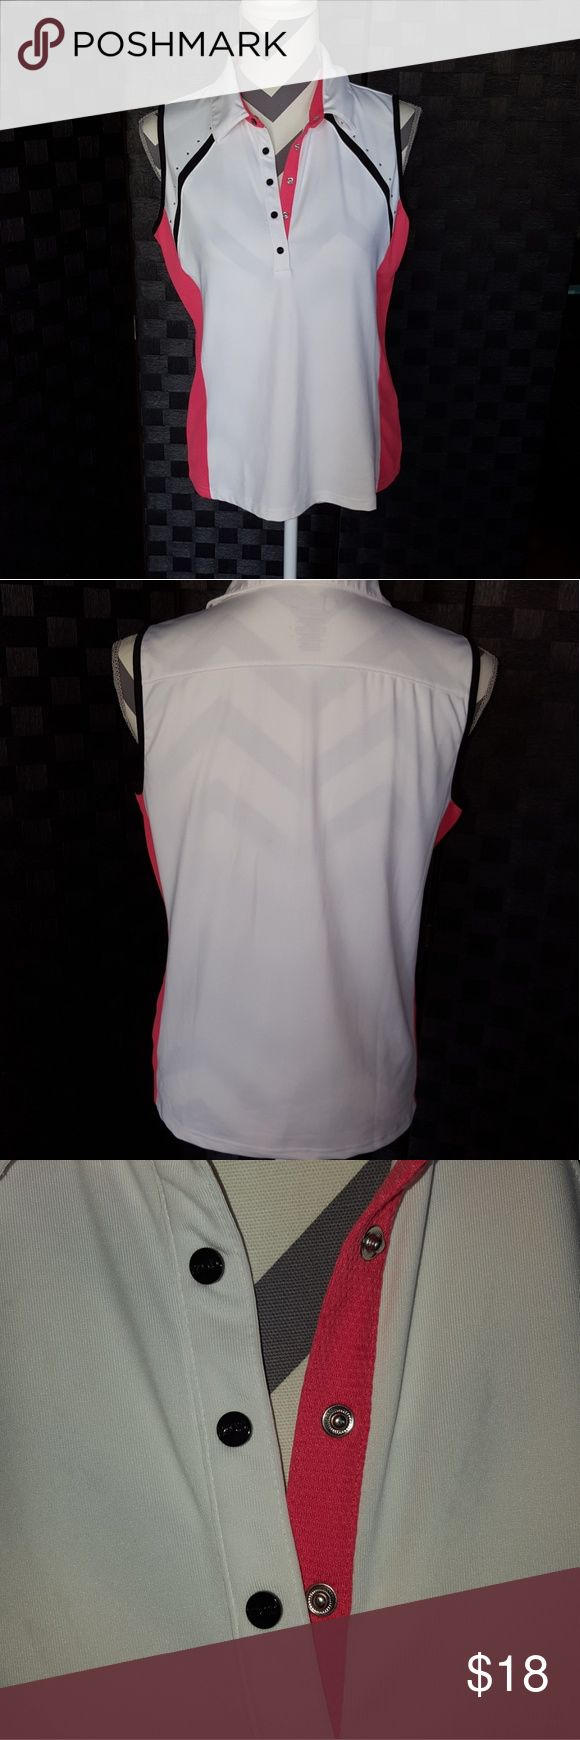 Women golf top Pink and white with Rhine stones on collar bone sleeveless top in good condition Izod Tops Tank Tops